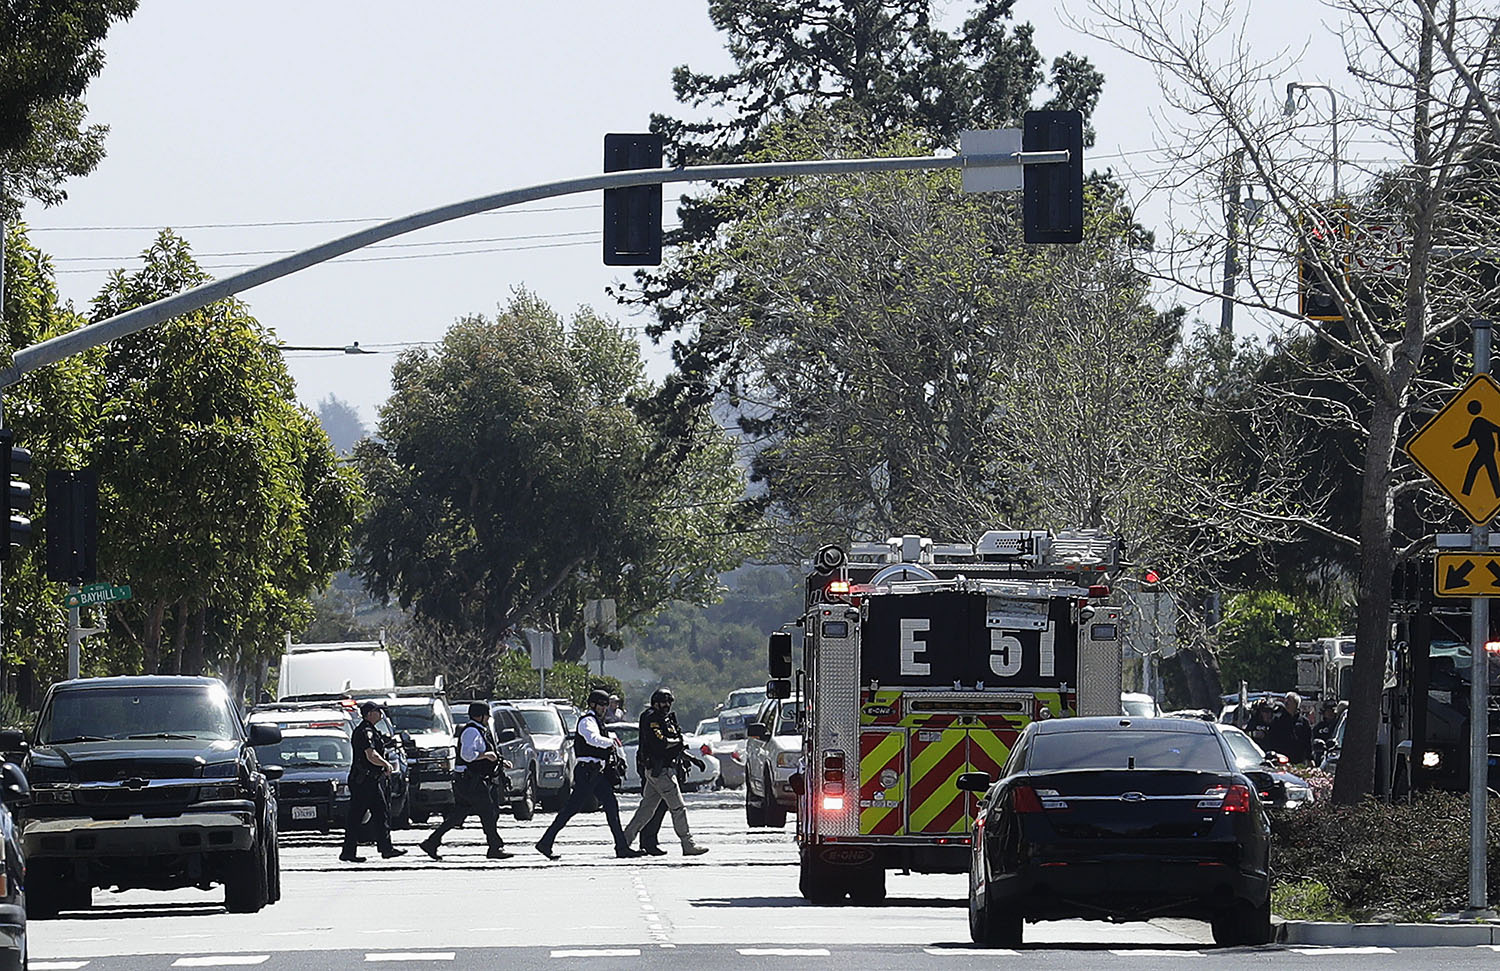 <div class='meta'><div class='origin-logo' data-origin='none'></div><span class='caption-text' data-credit='Jeff Chiu/AP Photo'>Police in Northern California are responding to reports of a shooting at YouTube headquarters in the city of San Bruno.</span></div>